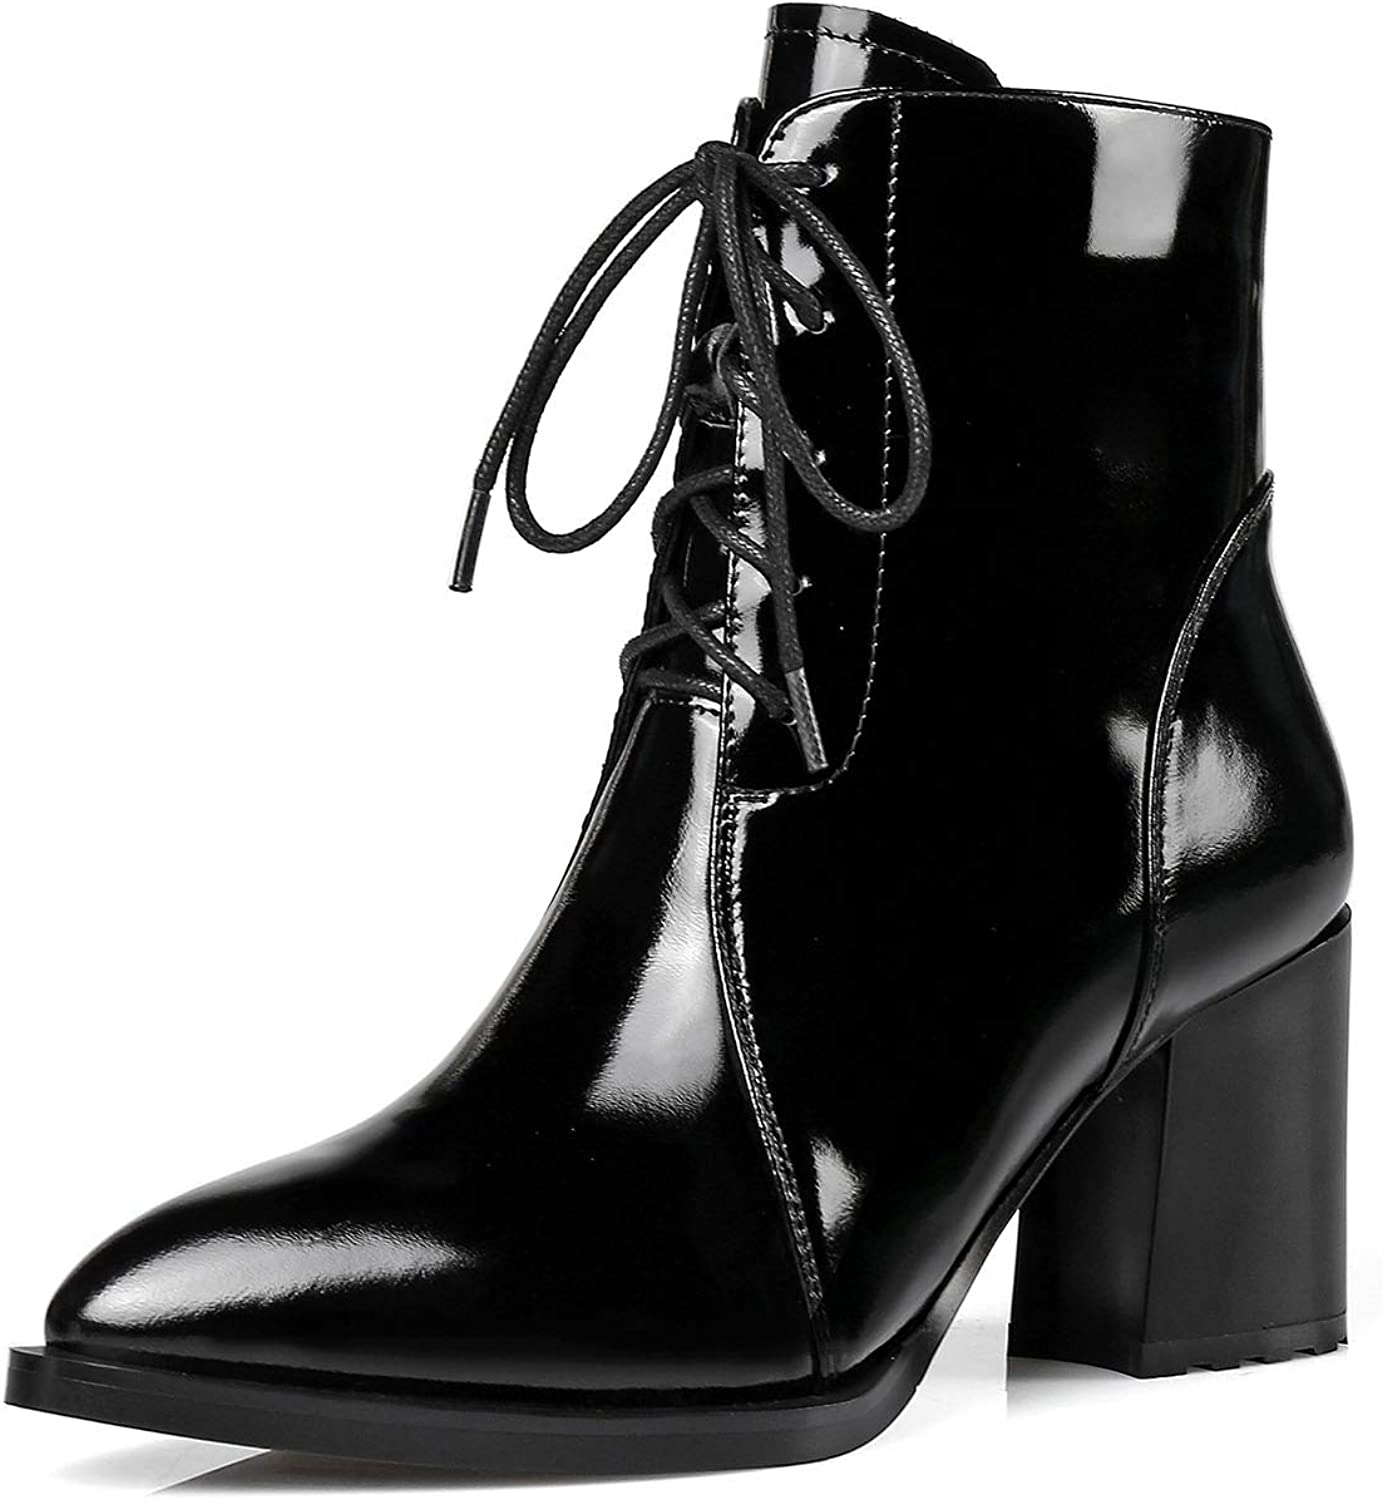 Women's Ankle Boots, Lace-up Patent Leather Ankle Boots Zipper Pointed Rough High Heels Autumn Winter Leather Boots (color   Black, Size   34)